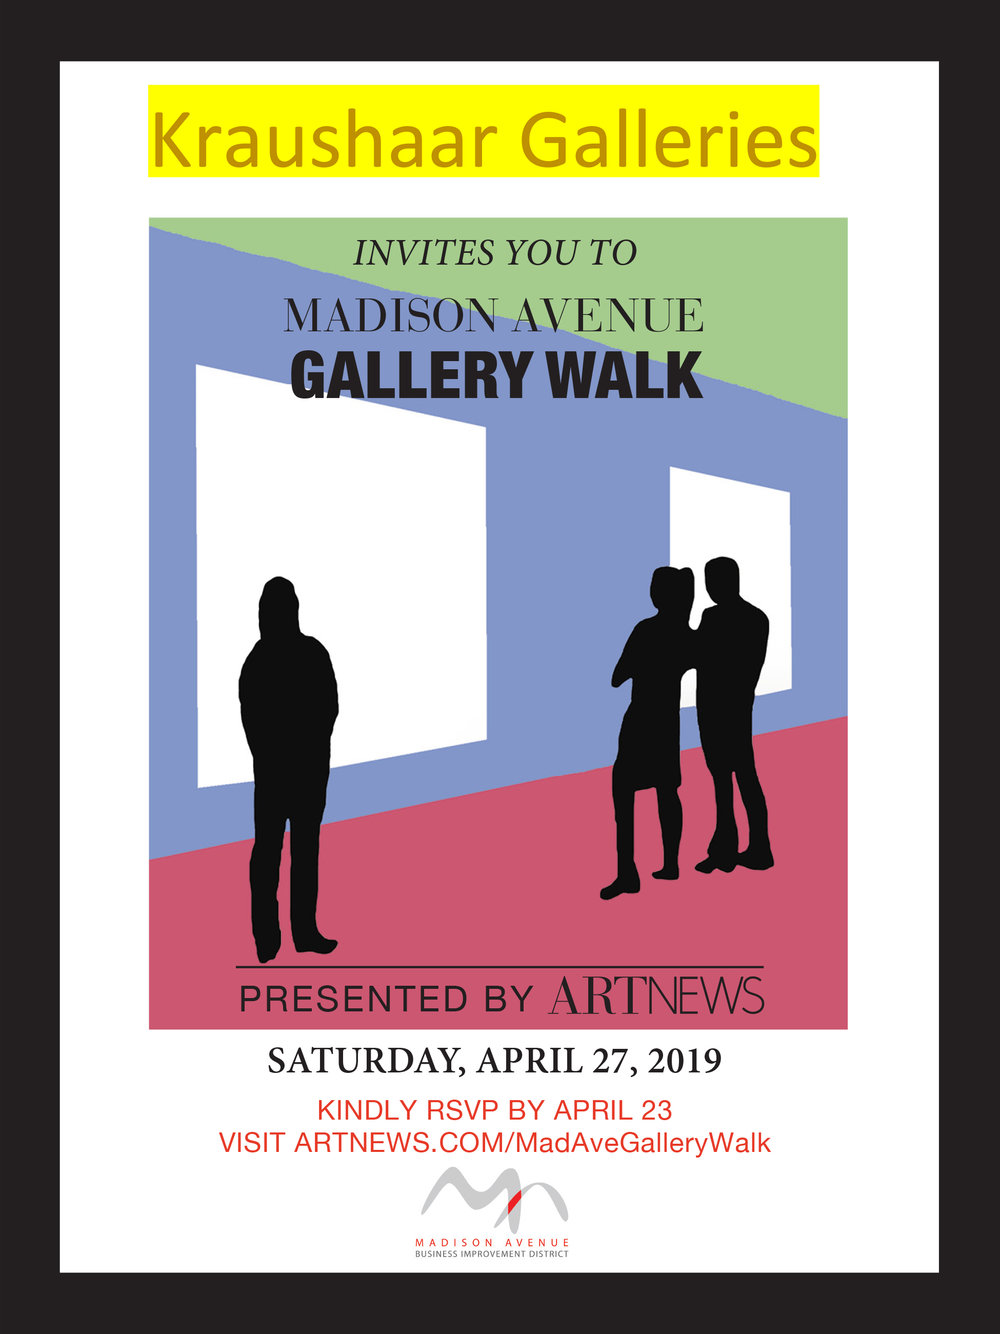 Advertisement for the Madison Avenue Gallery Walk, Saturday, April 27, 2019.